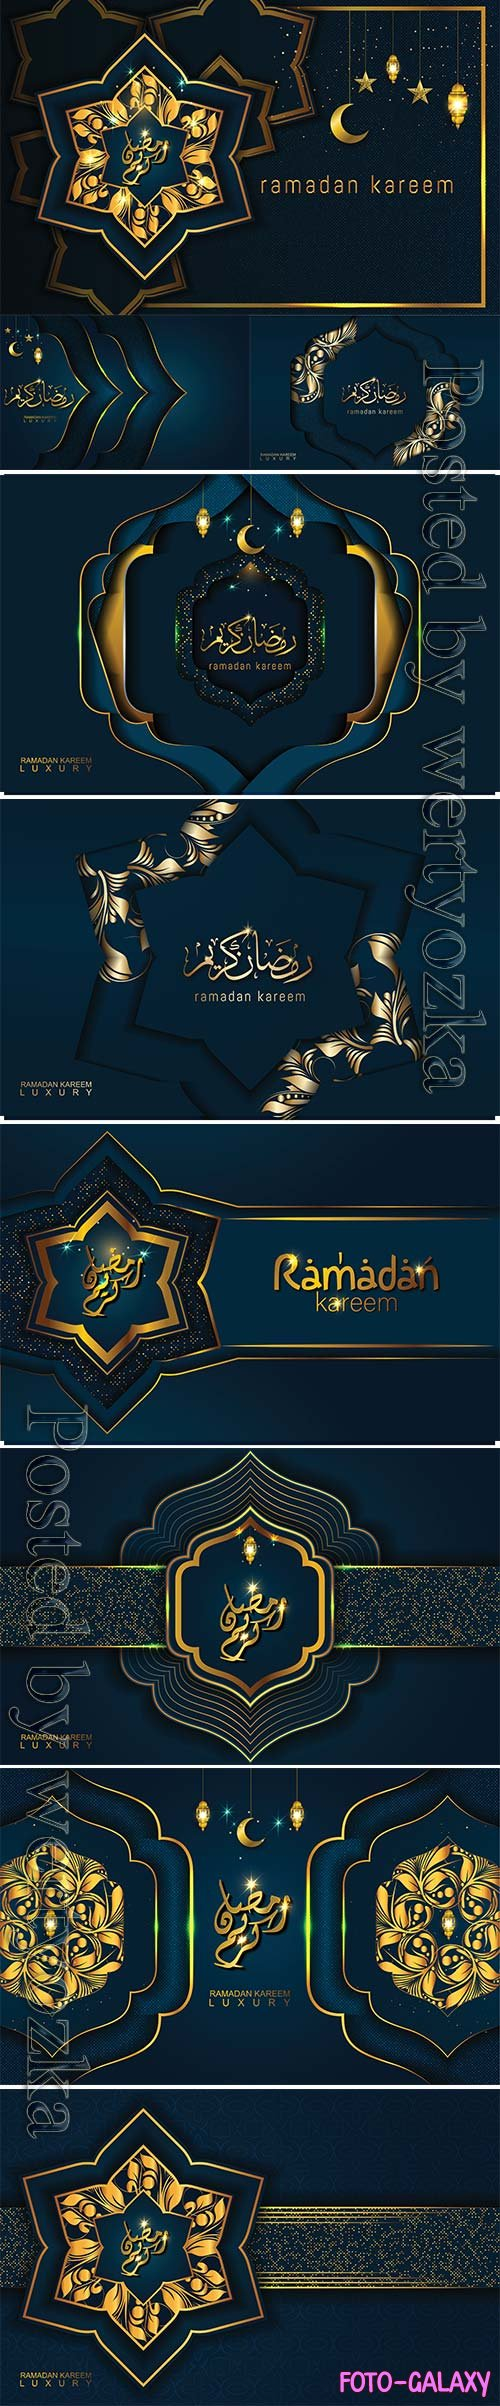 Ramadan Kareem in luxury style with arabic calligraphy